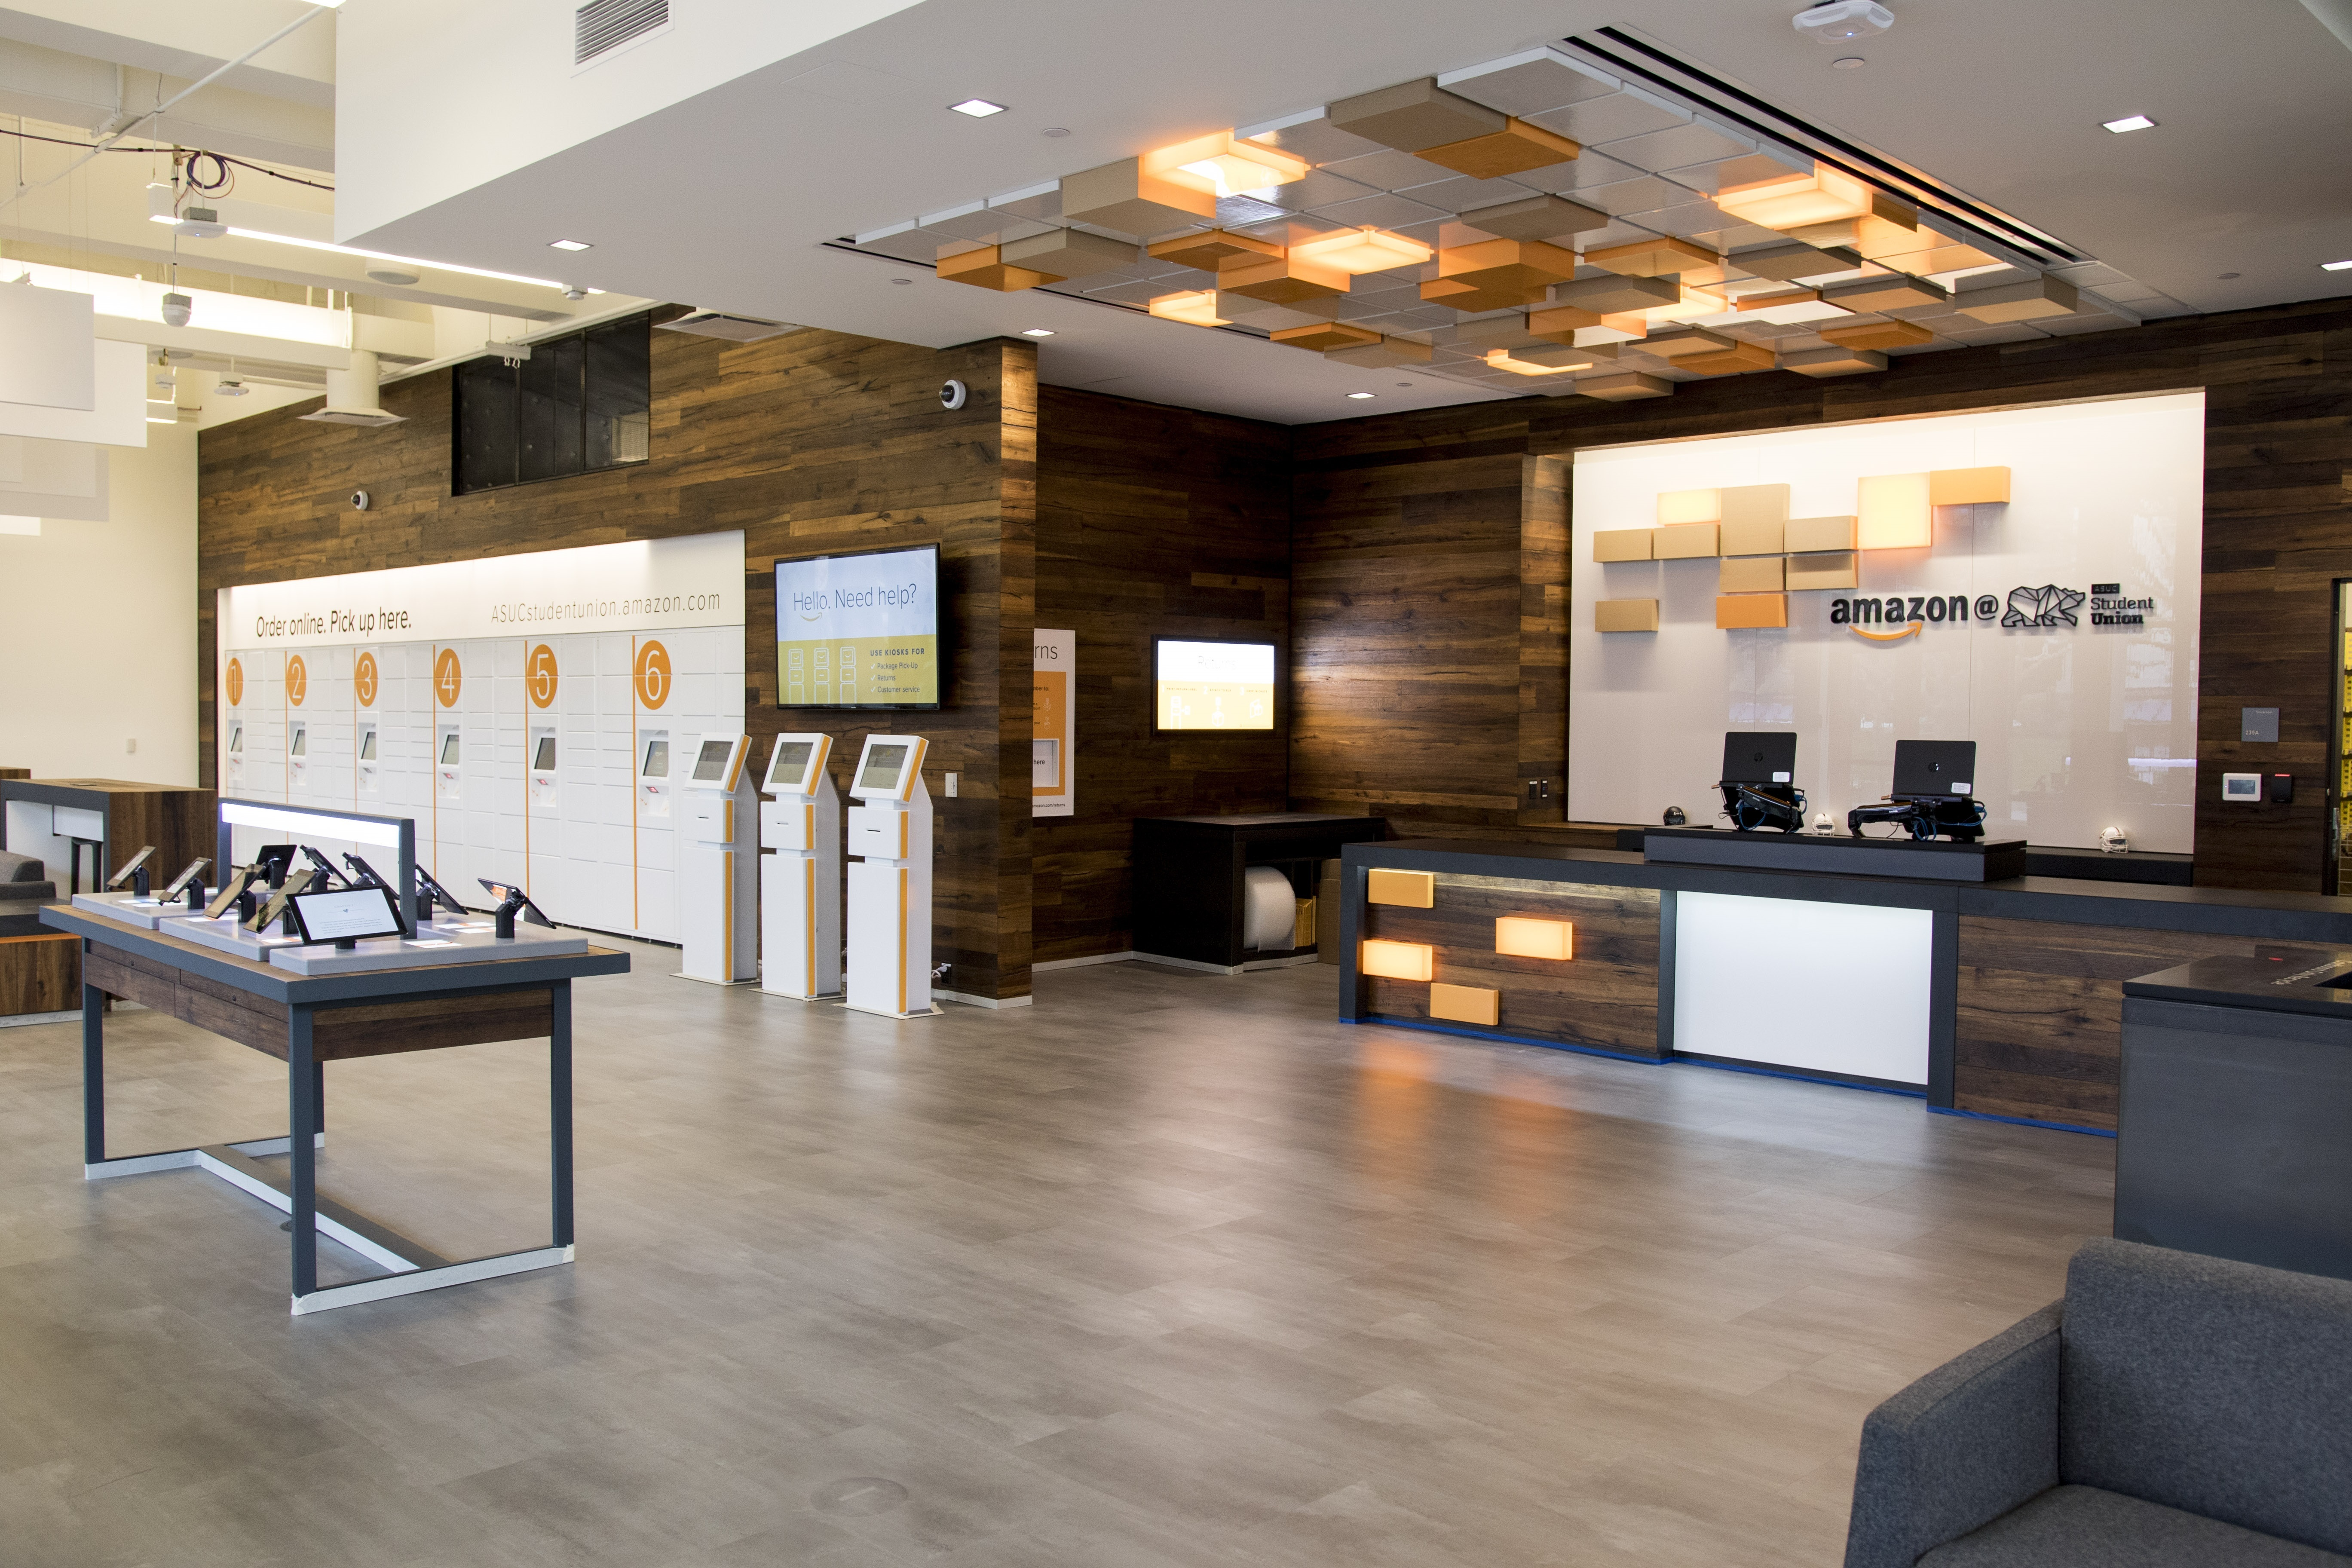 Amazon opens Amazon@ASUC Student Union on the UC Berkeley campus (Photo: Business Wire)